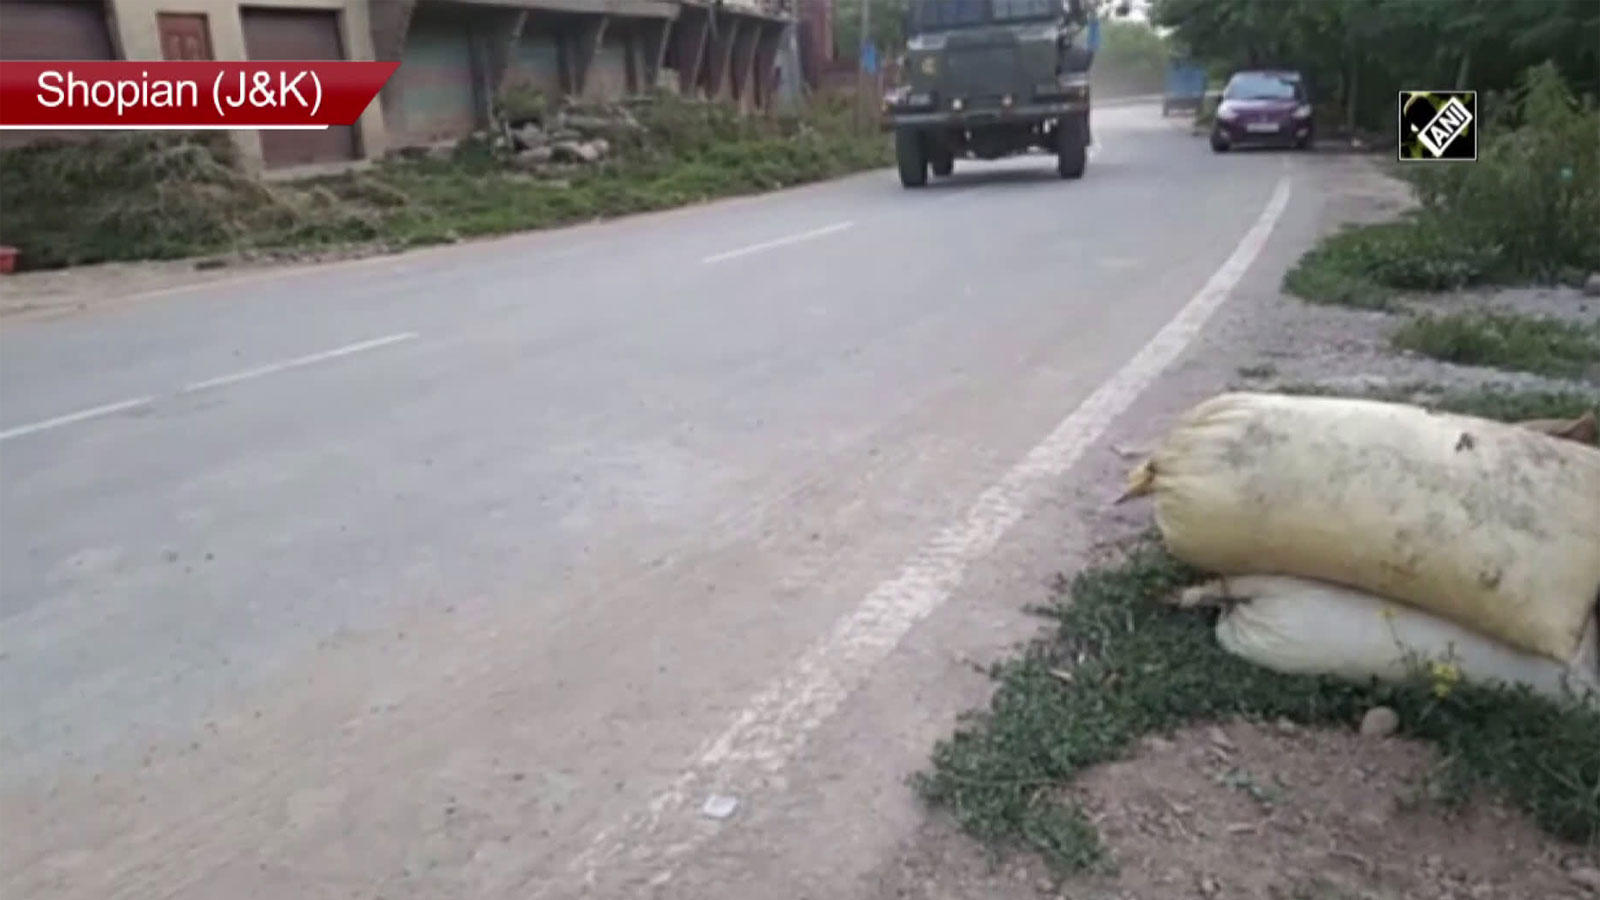 terrorists-fire-shots-at-crpf-party-in-jks-shopian-no-casualties-reported